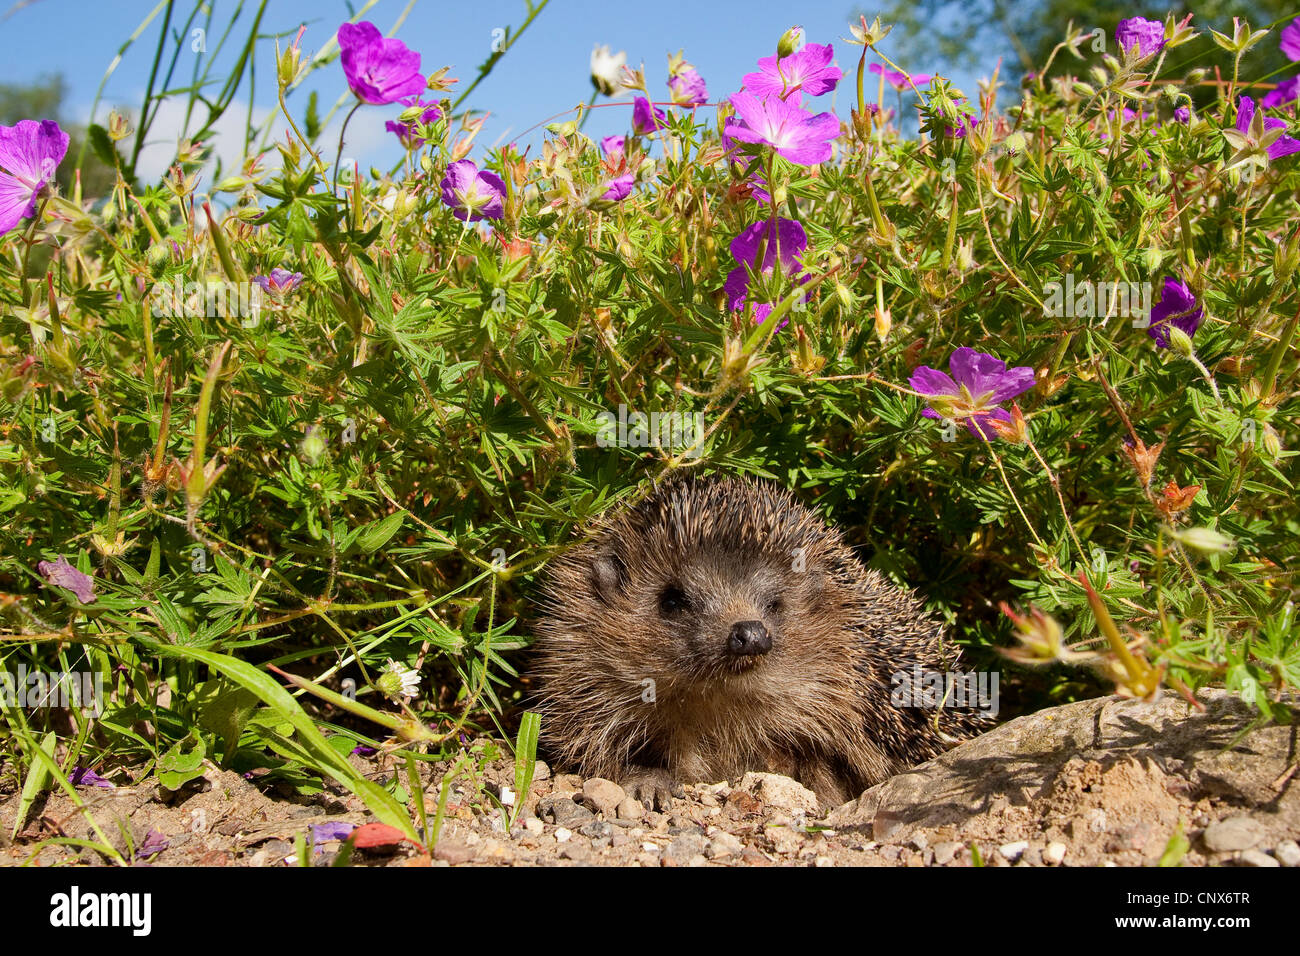 Western hedgehog, European hedgehog (Erinaceus europaeus), in flowerbed, Germany - Stock Image